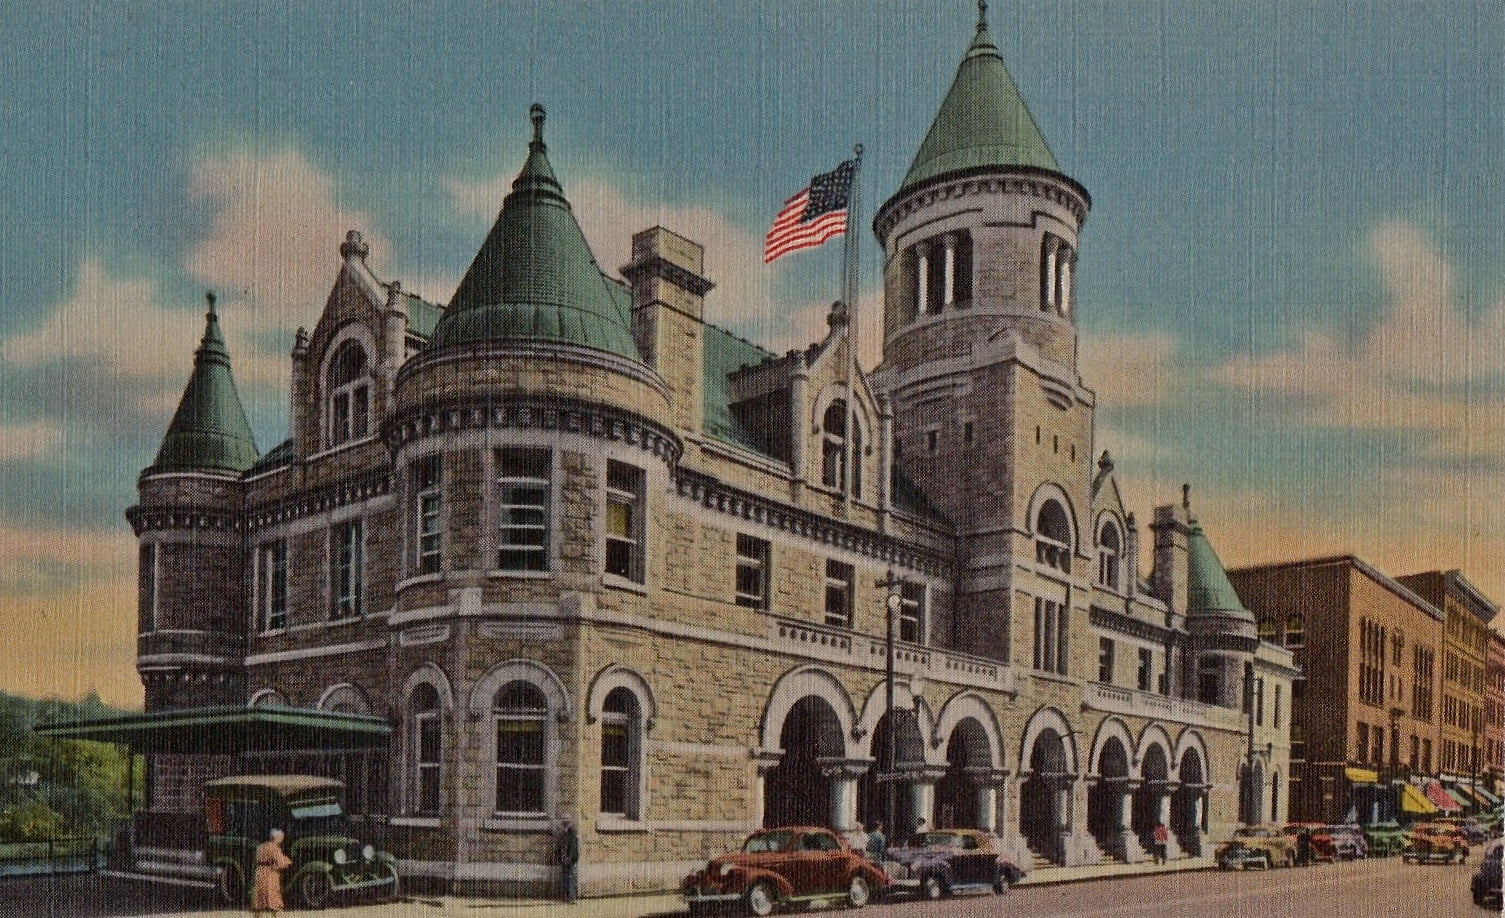 The United States Post Office in Augusta, Maine